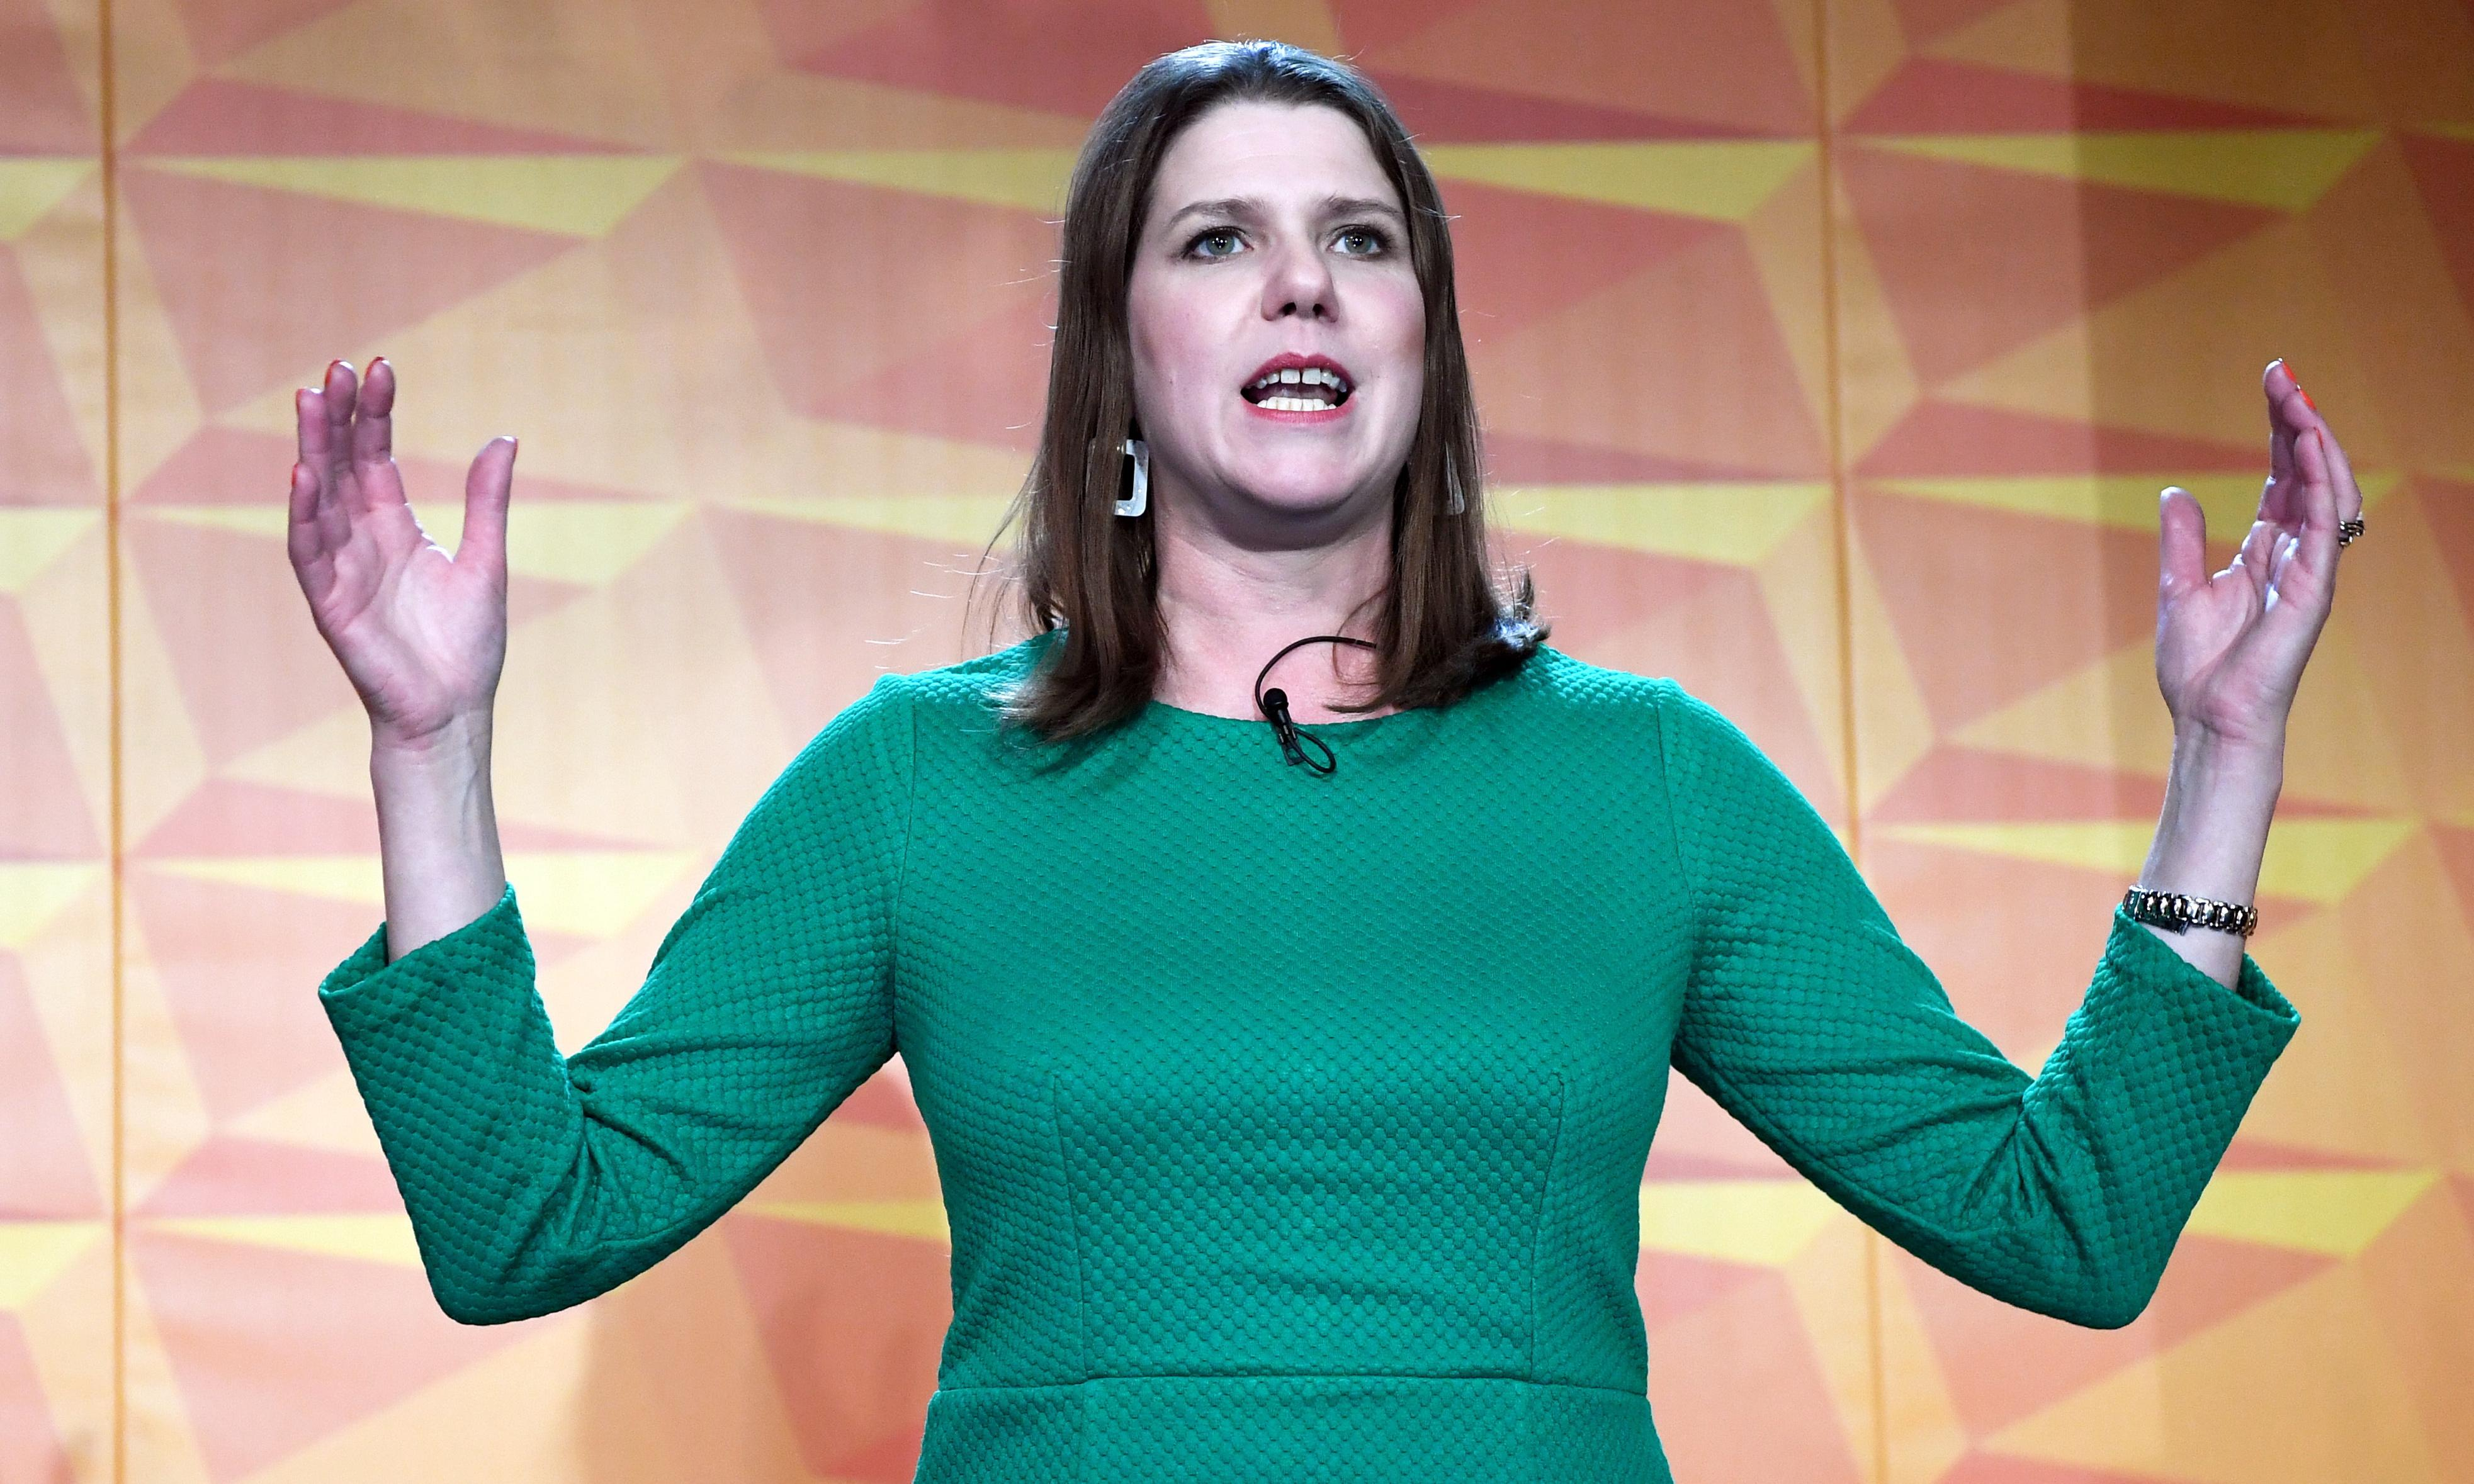 This week's biggest Twitter controversy? Jo Swinson's squirrel problem